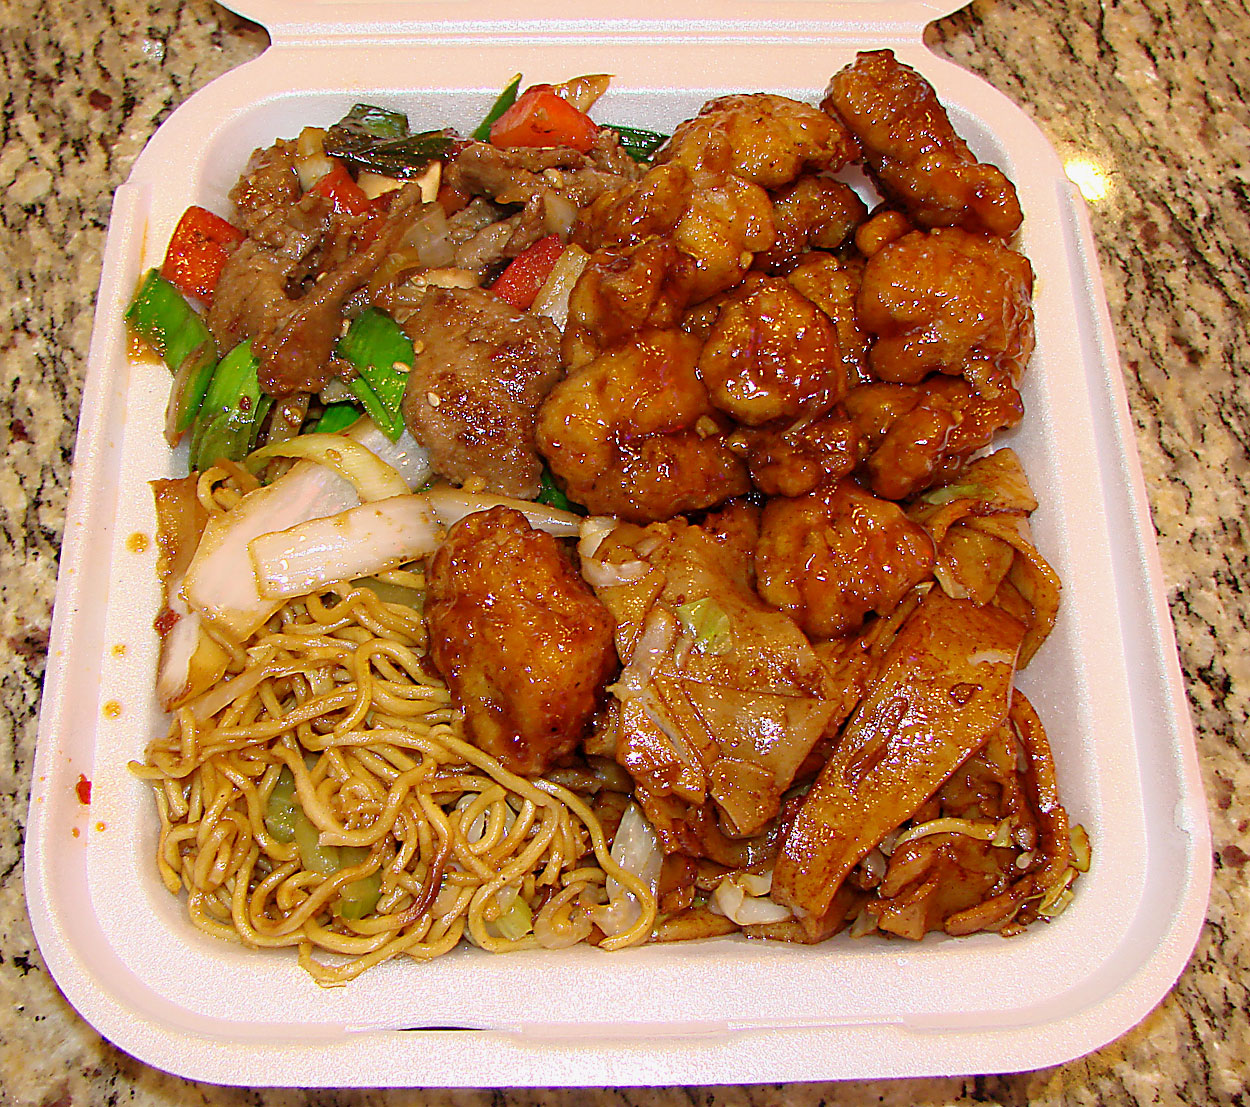 panda express 37 reviews of panda express my wife and i had just been to a visitation and we decided to grab a bite as my wife loves chinese food we decided to give this place a try.